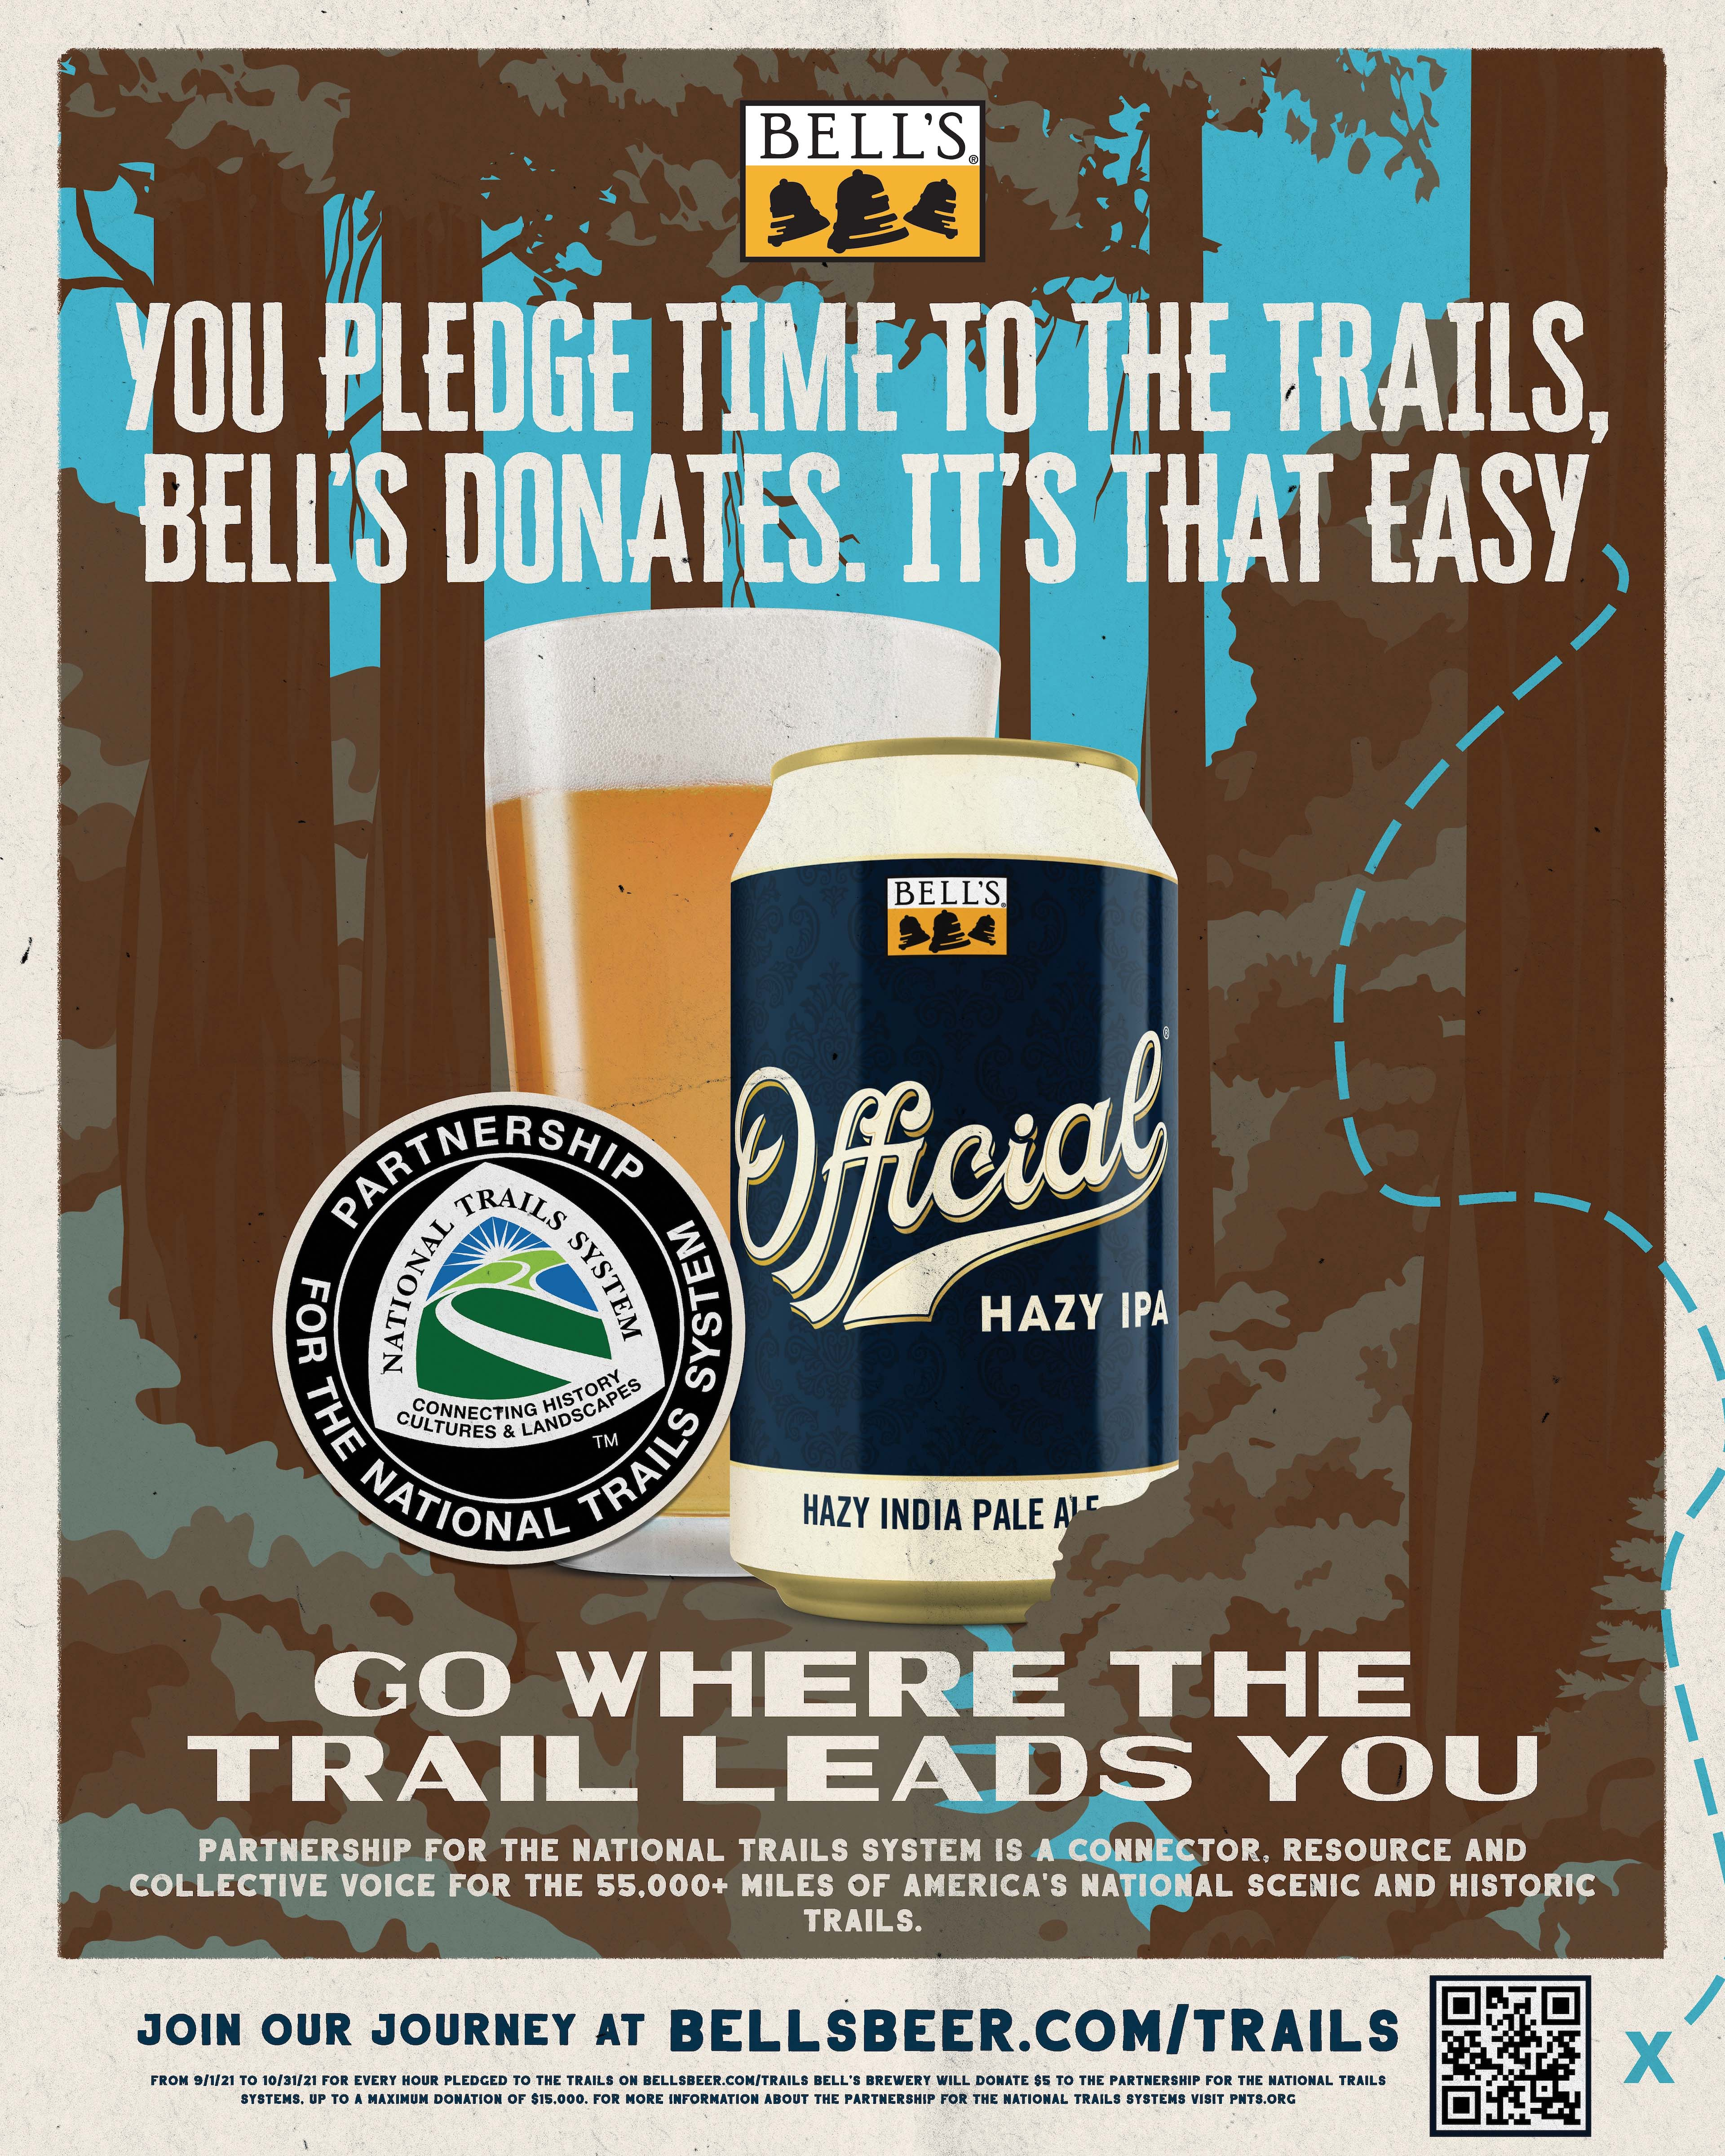 Go where the trail leads you poster featuring the PNTS logo and Bell's Official IPA